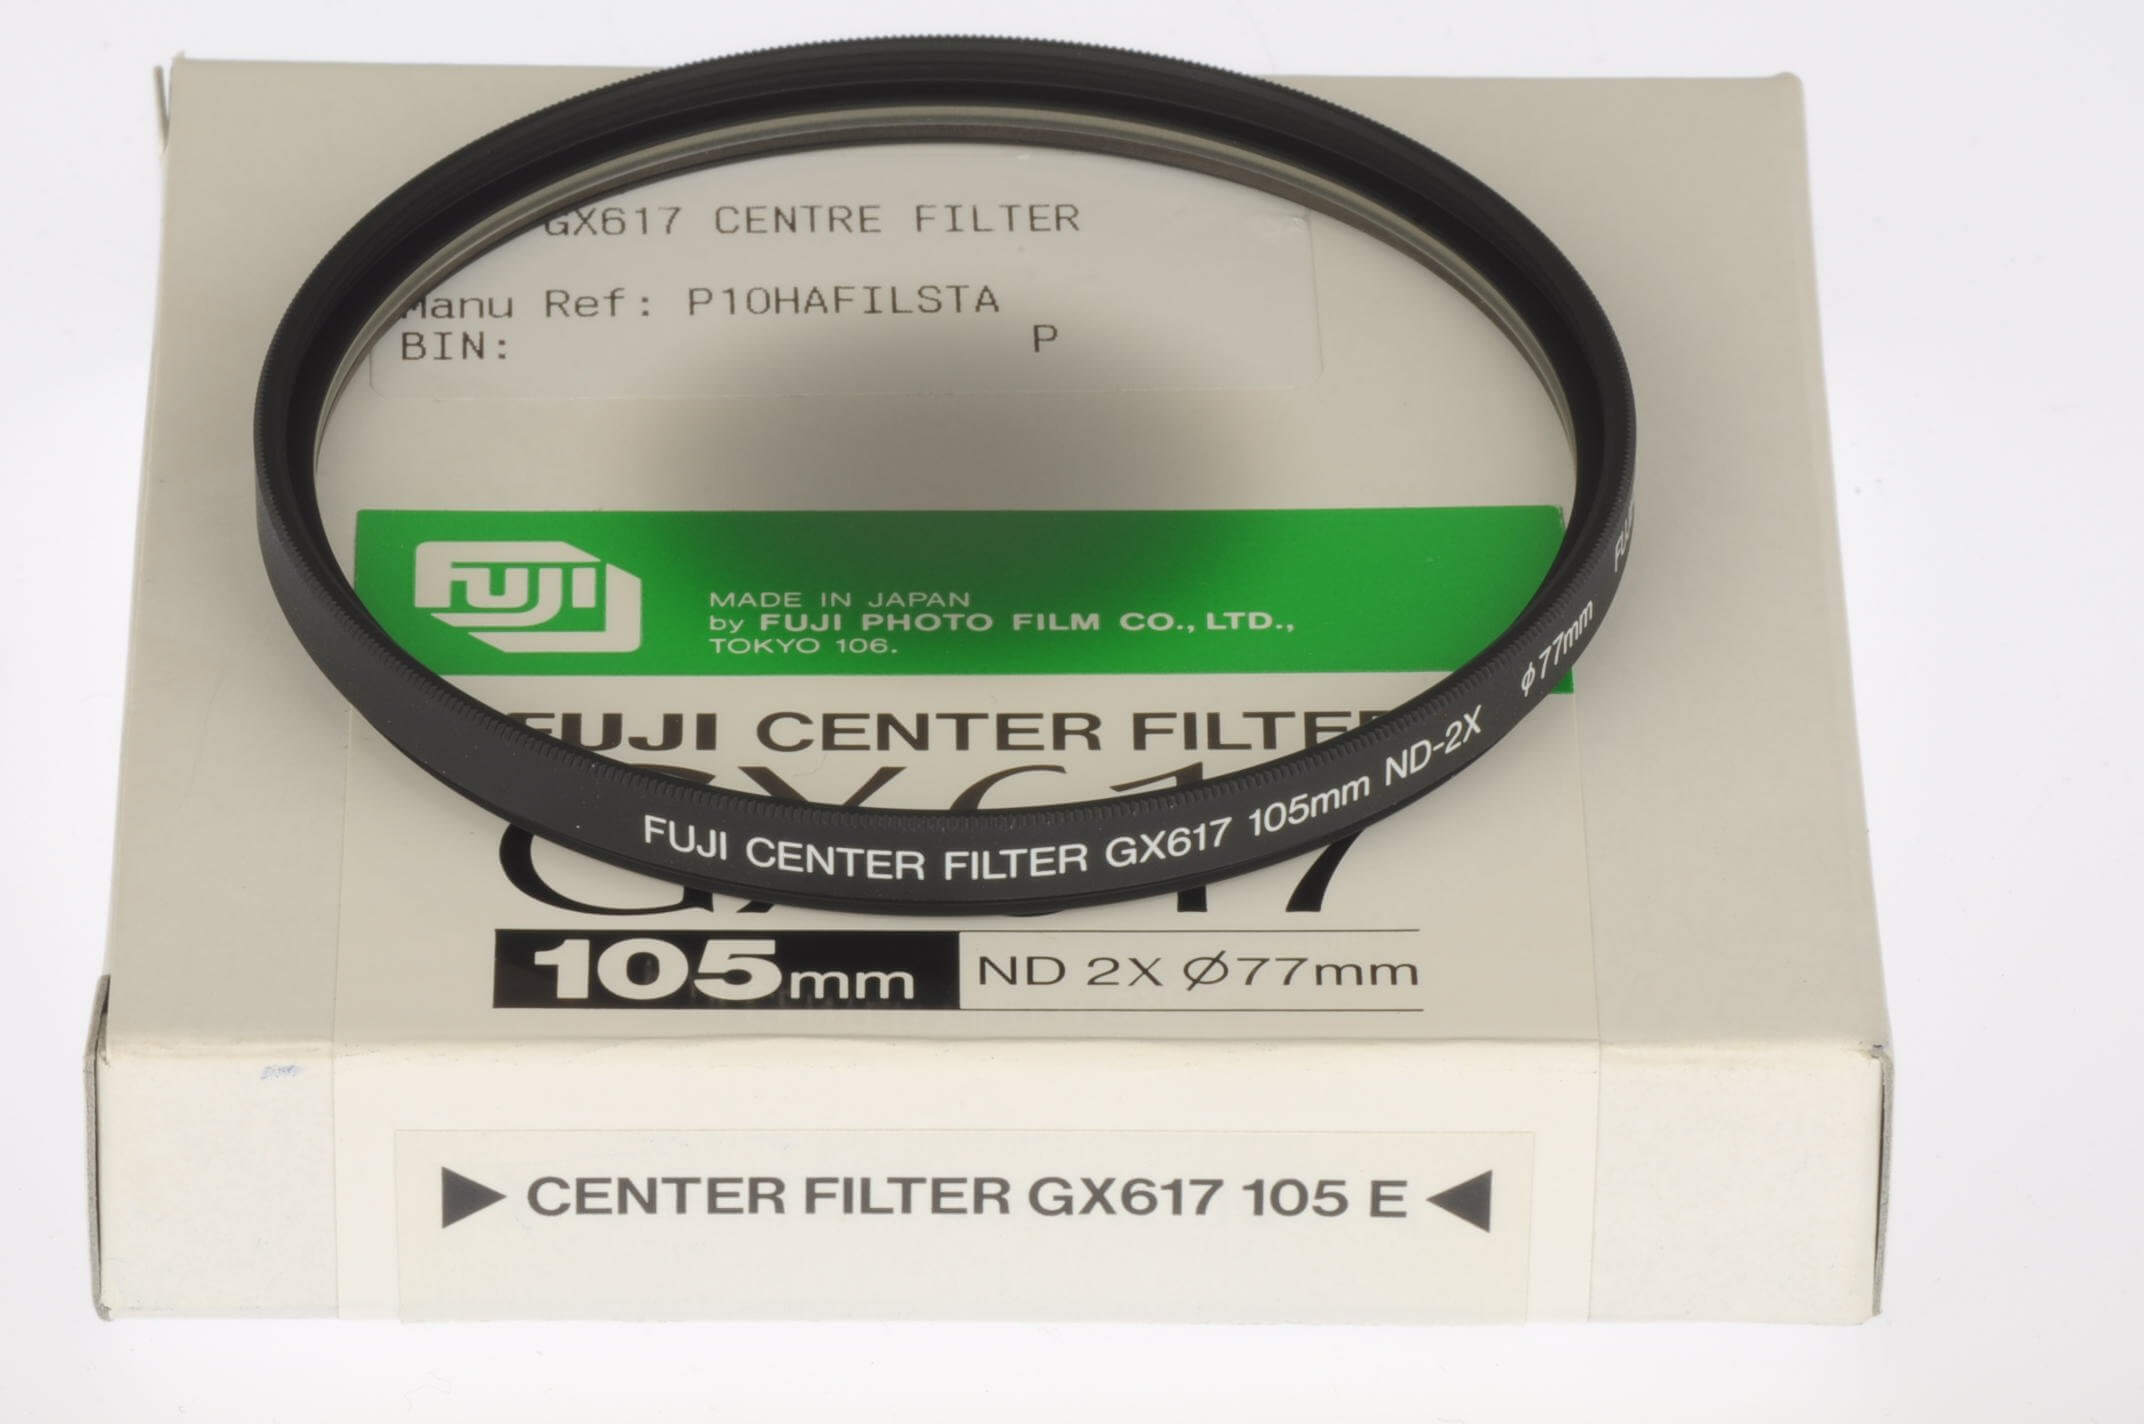 Fuji GX617 centre filter for 105mm lens, boxed and unused.